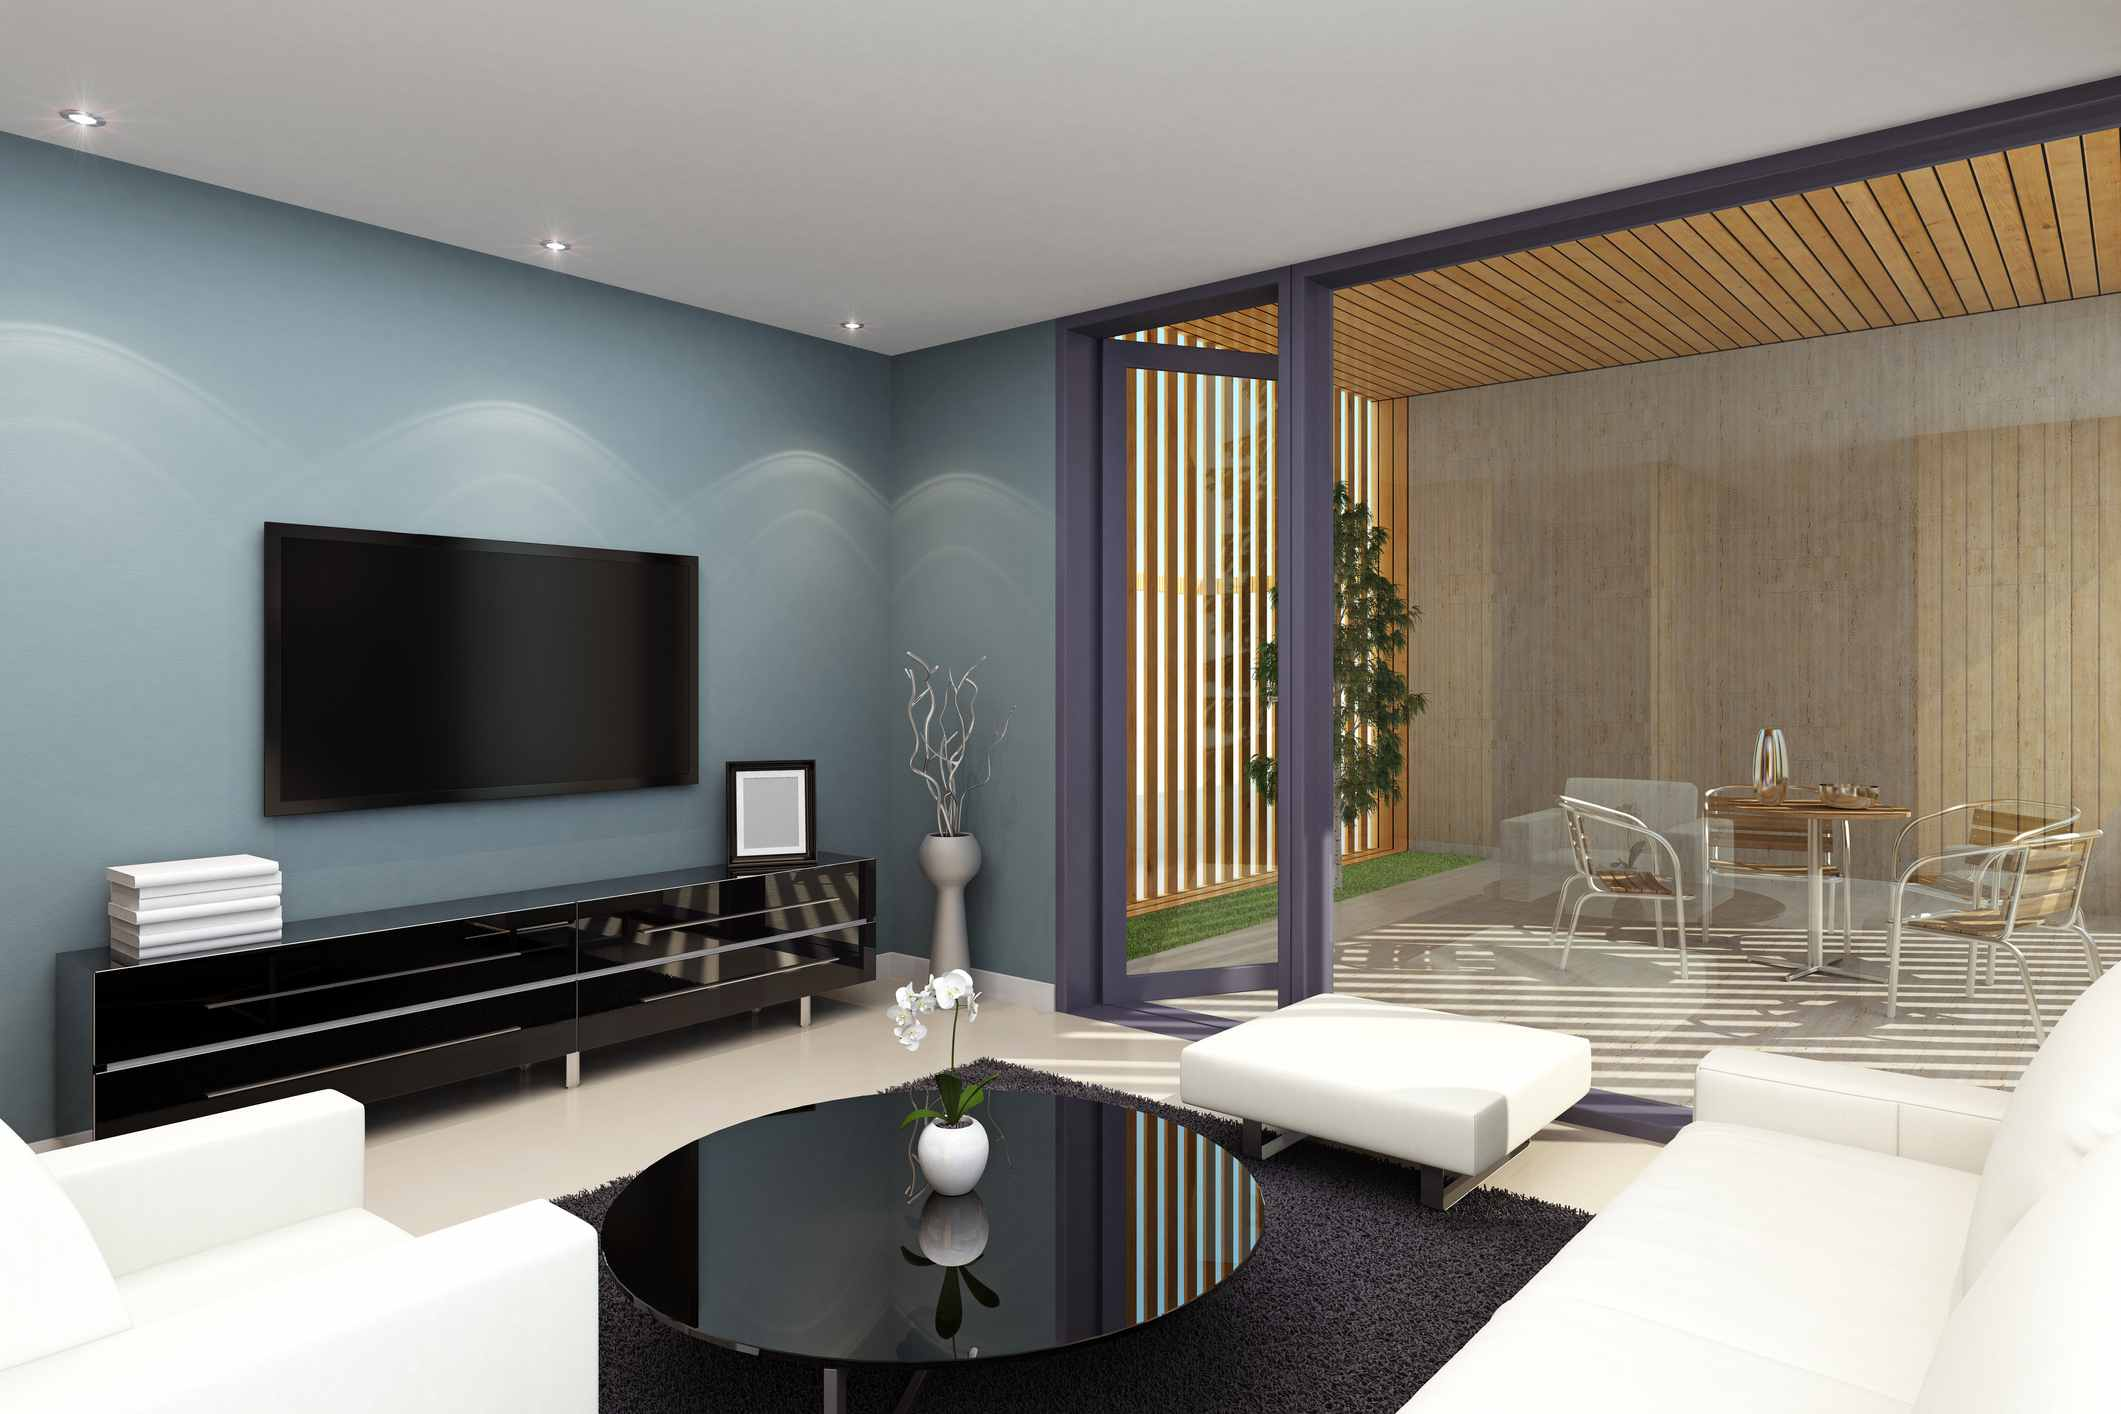 Recessed ceiling lights in a blue living room with mounted television and white chairs and couch